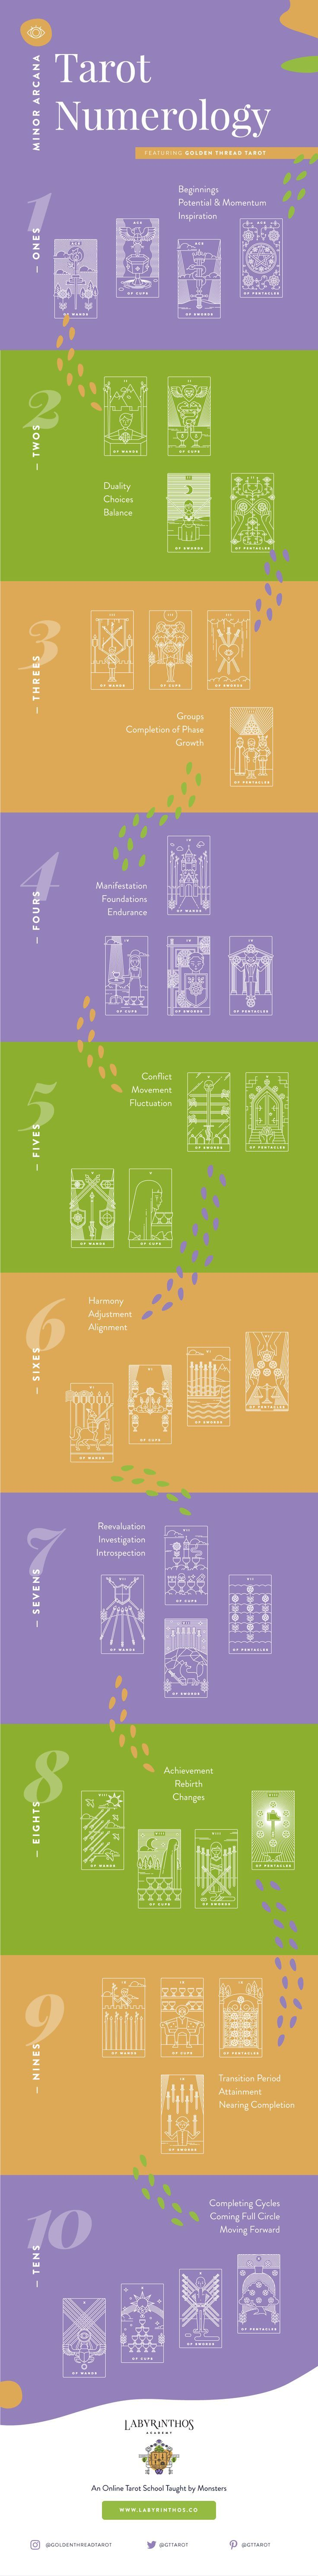 Full Infographic: Tarot and Numerology / Minor Arcana - A Cheat Sheet.   Get more Tarot guides and information free at http://labyrinthos.co